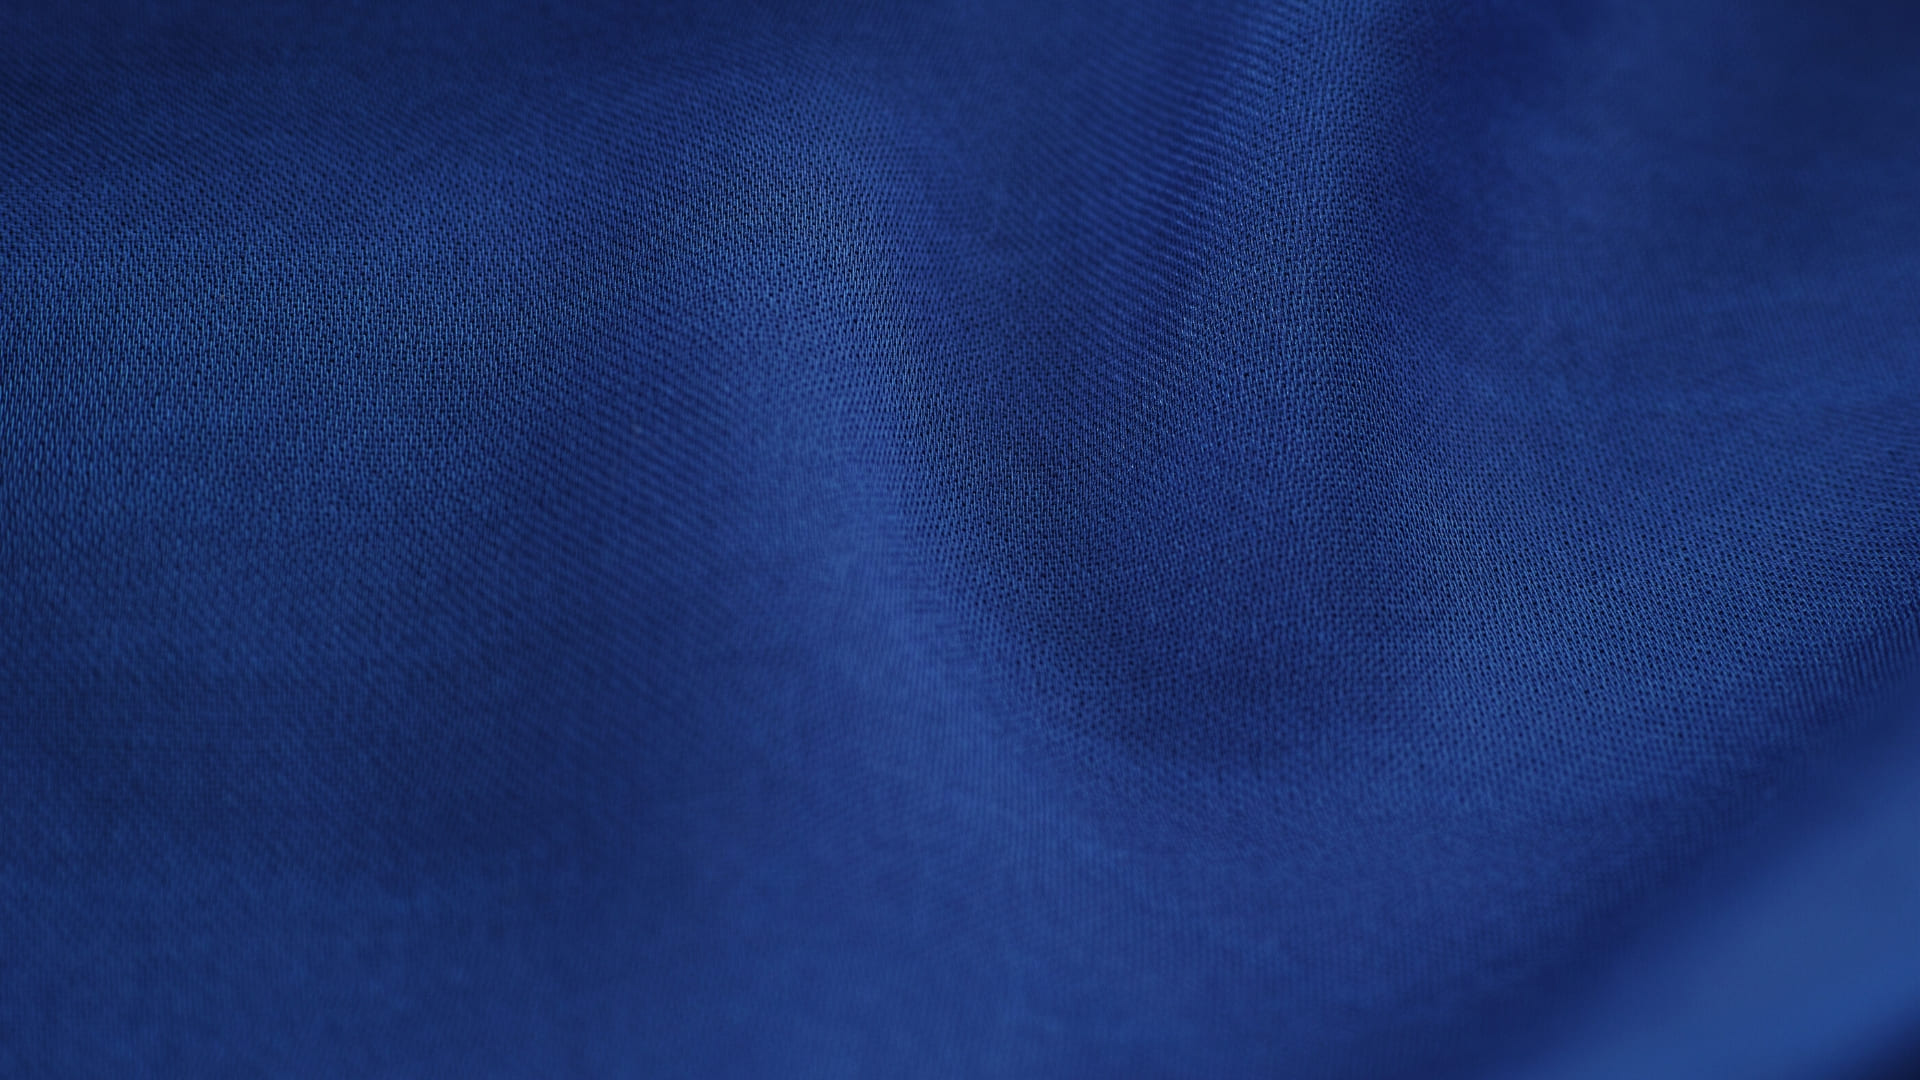 Blue background images hd